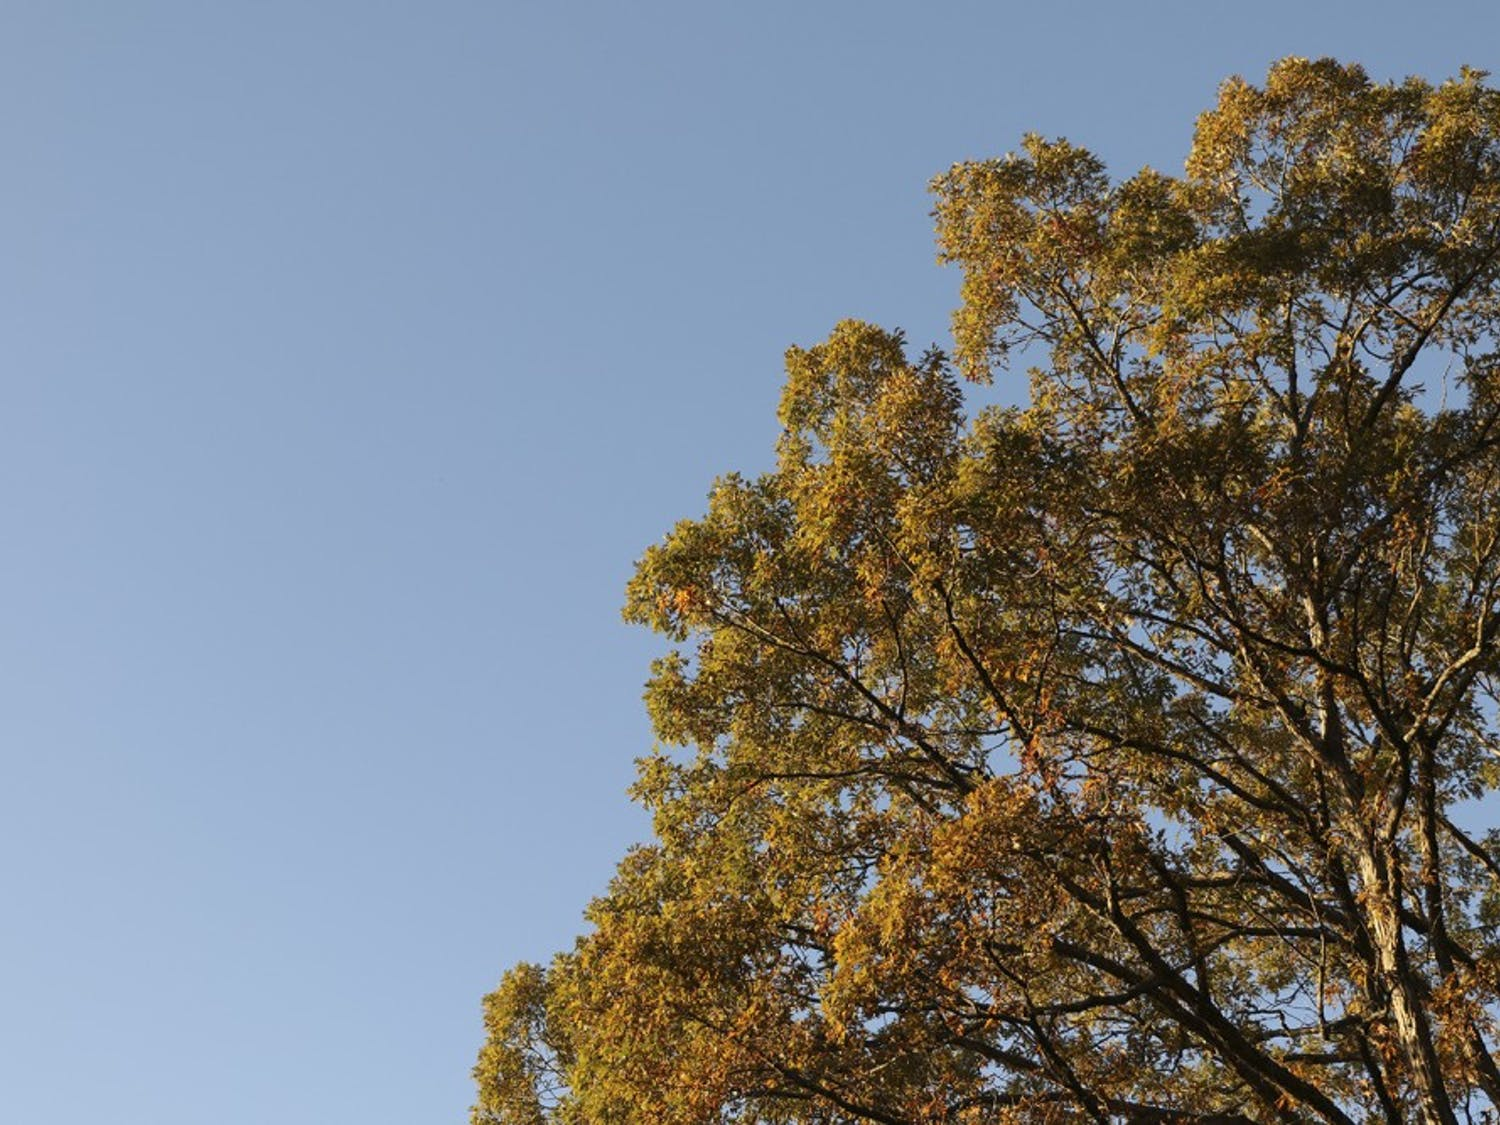 Chapel Hill will celebrate Arbor Day, a day to recognize trees and their importance,on Nov. 18.